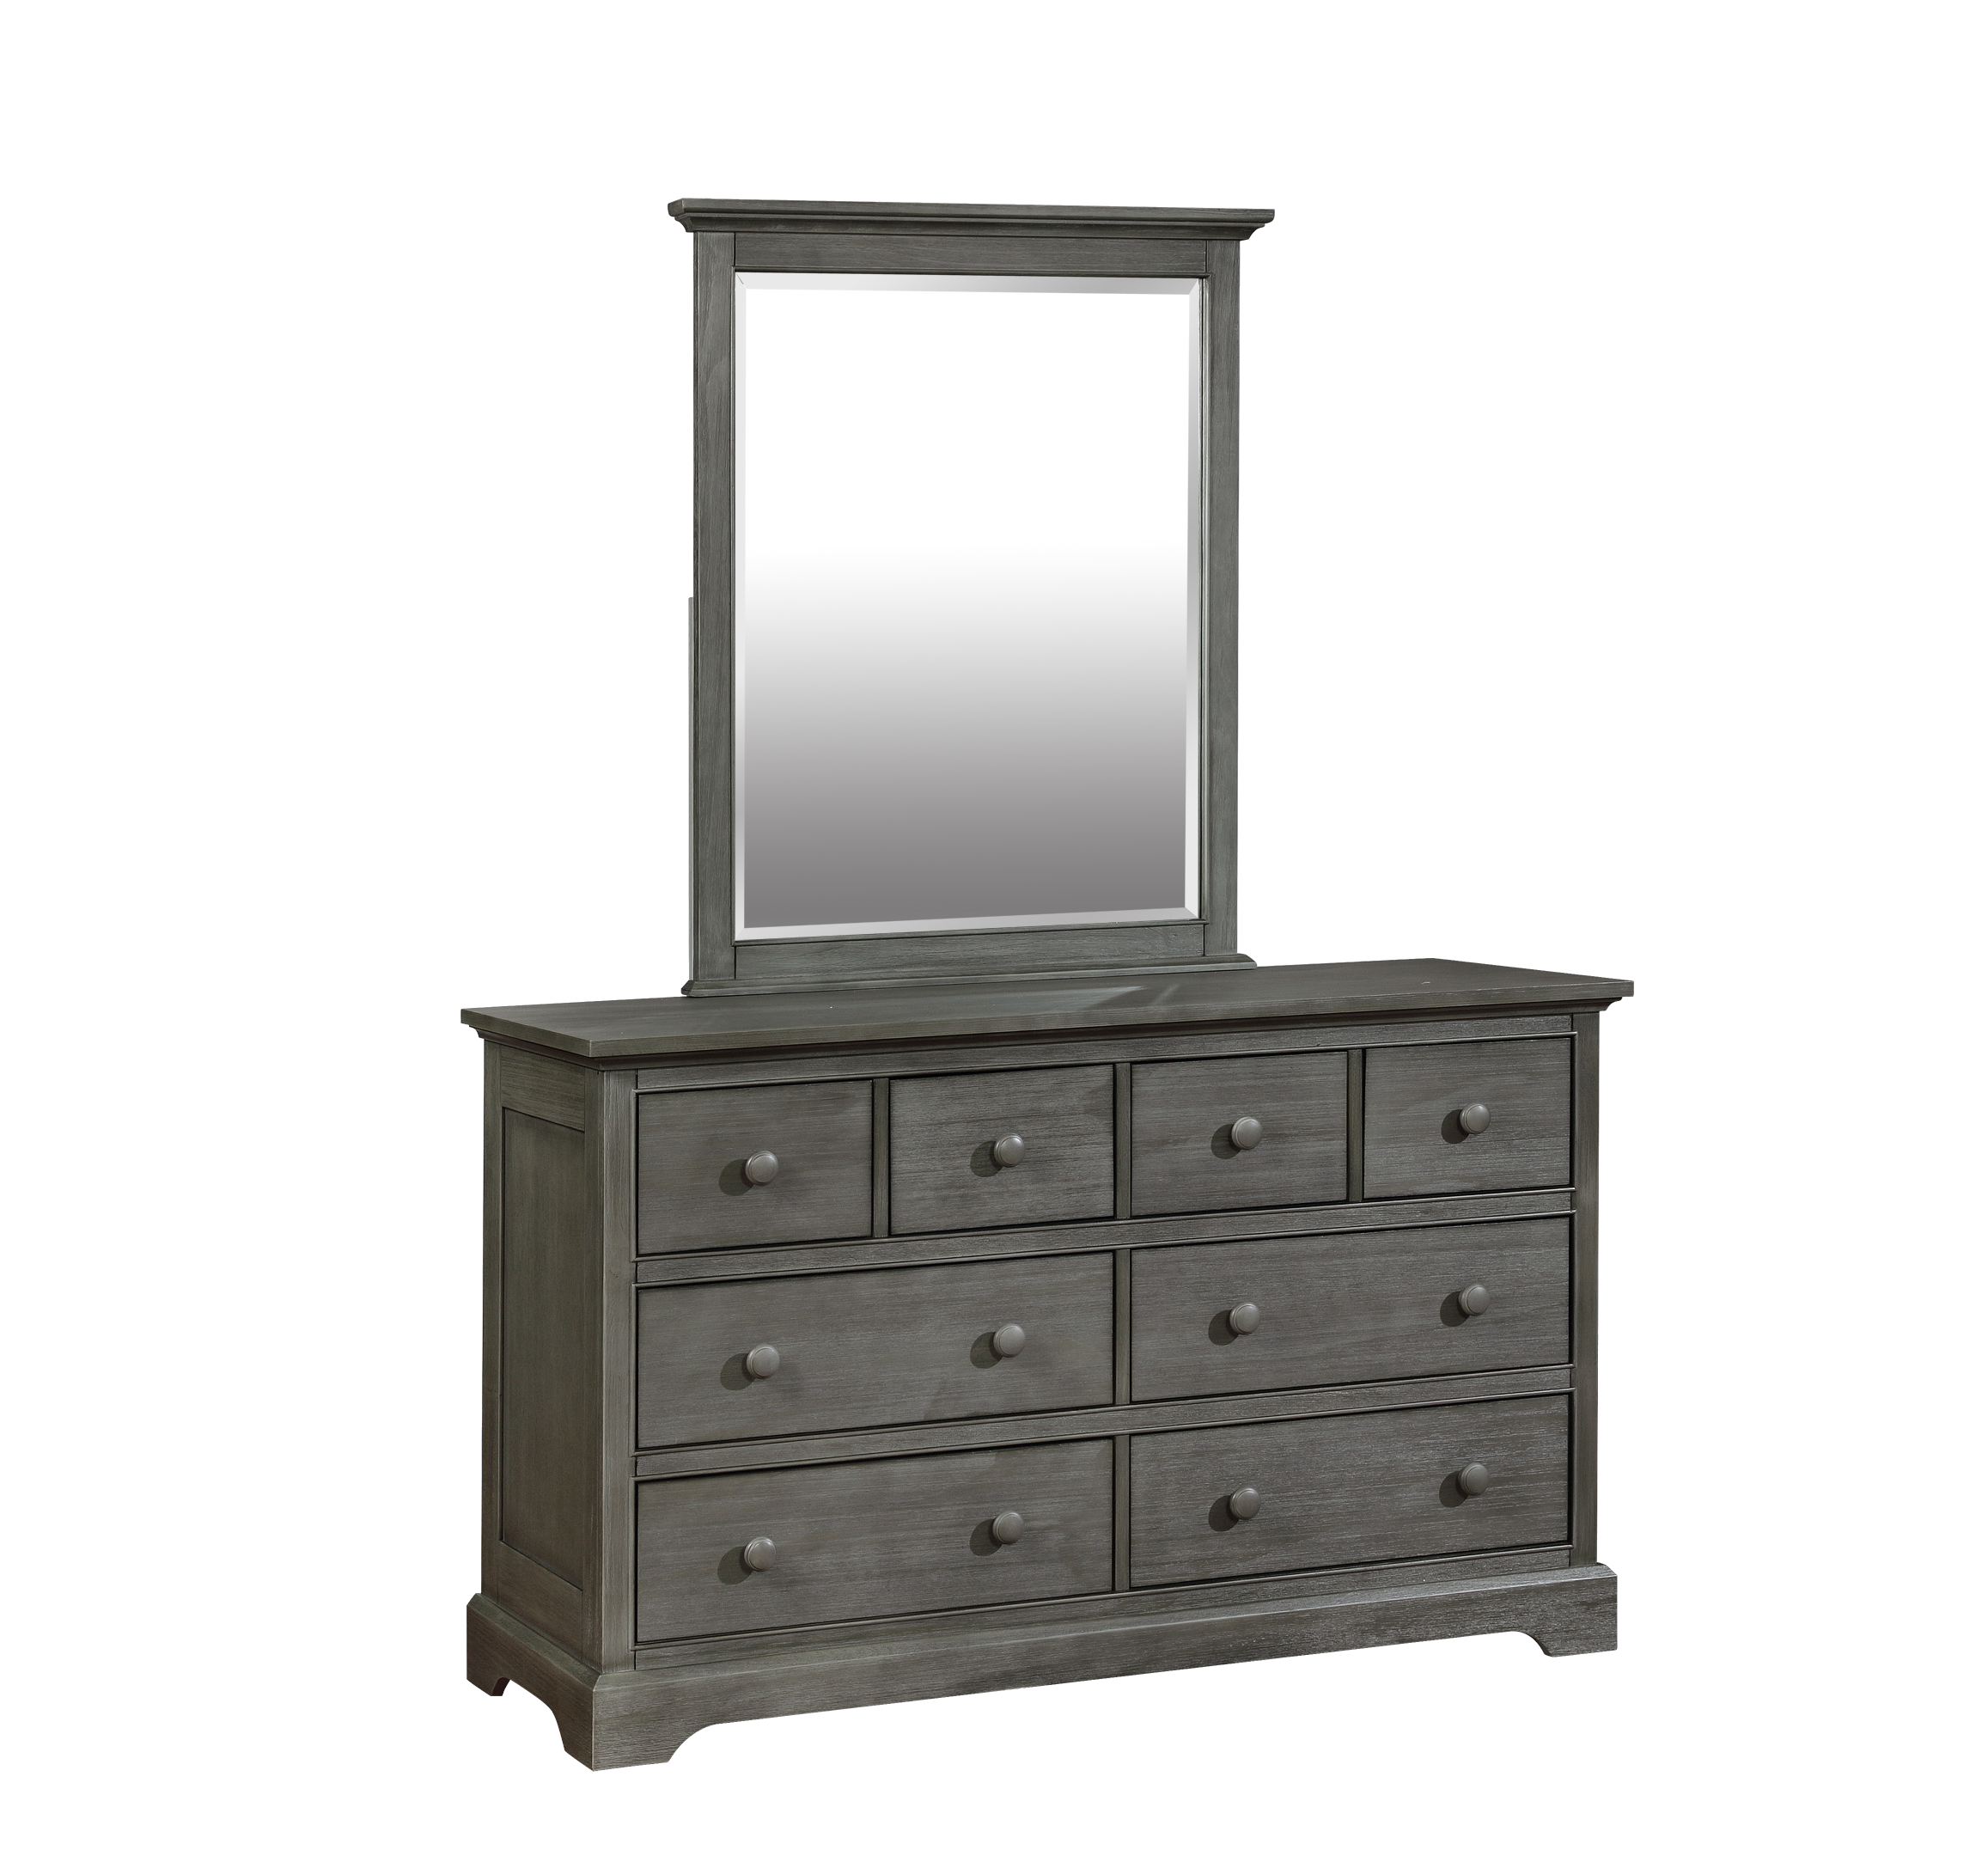 Waterford 8 Drawer Dresser with Waterford Mirror Weathered Grey